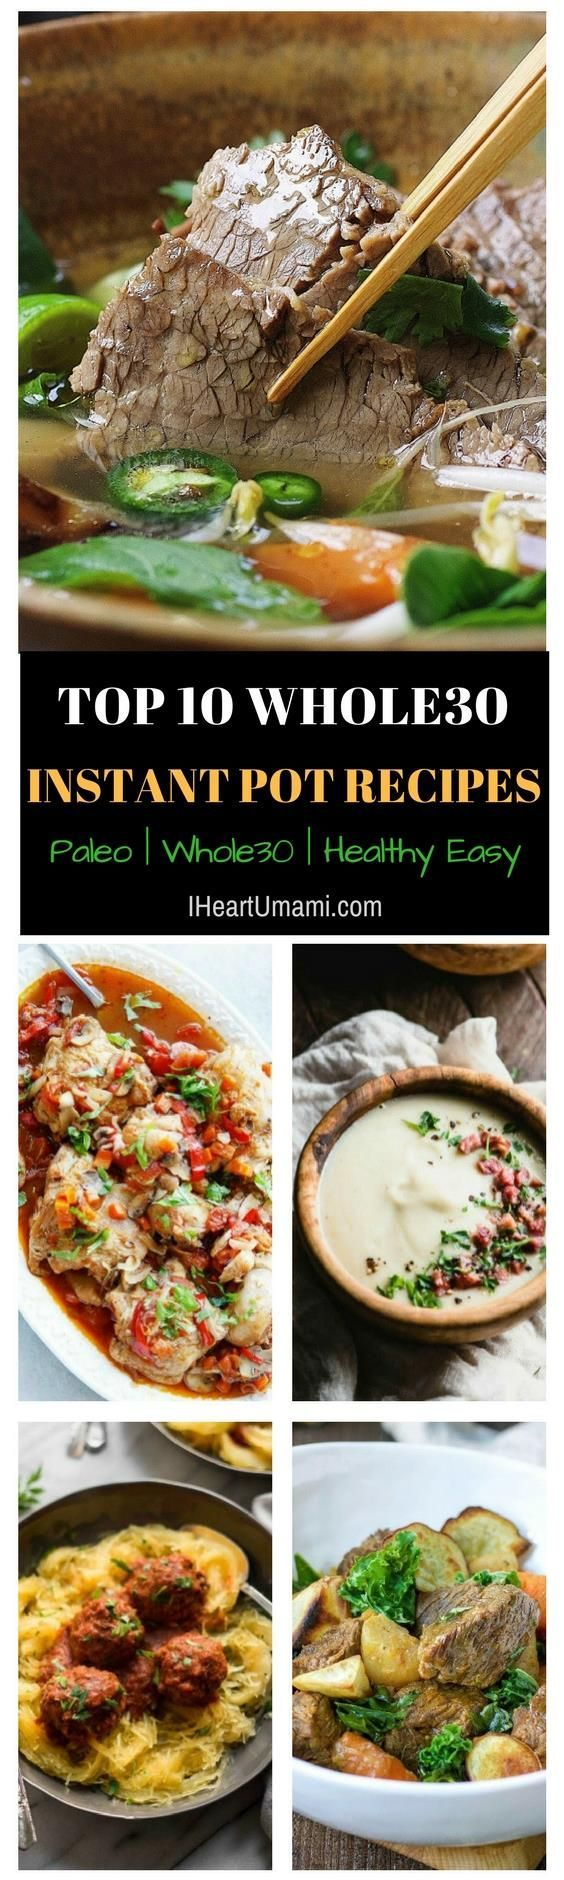 10 of the best Whole30 Instant Pot Recipes that are healthy, easy, low carb and Paleo friendly.  Save time and eat ridiculously well while staying Whole30. From classic Italian comfort food to Chinese Instant Pot recipes. Be sure to save this post. It will come in handy ! - IHeartUmami.com #instantpot #Whole30instantpot #Paleoinstantpot via @iheartumami